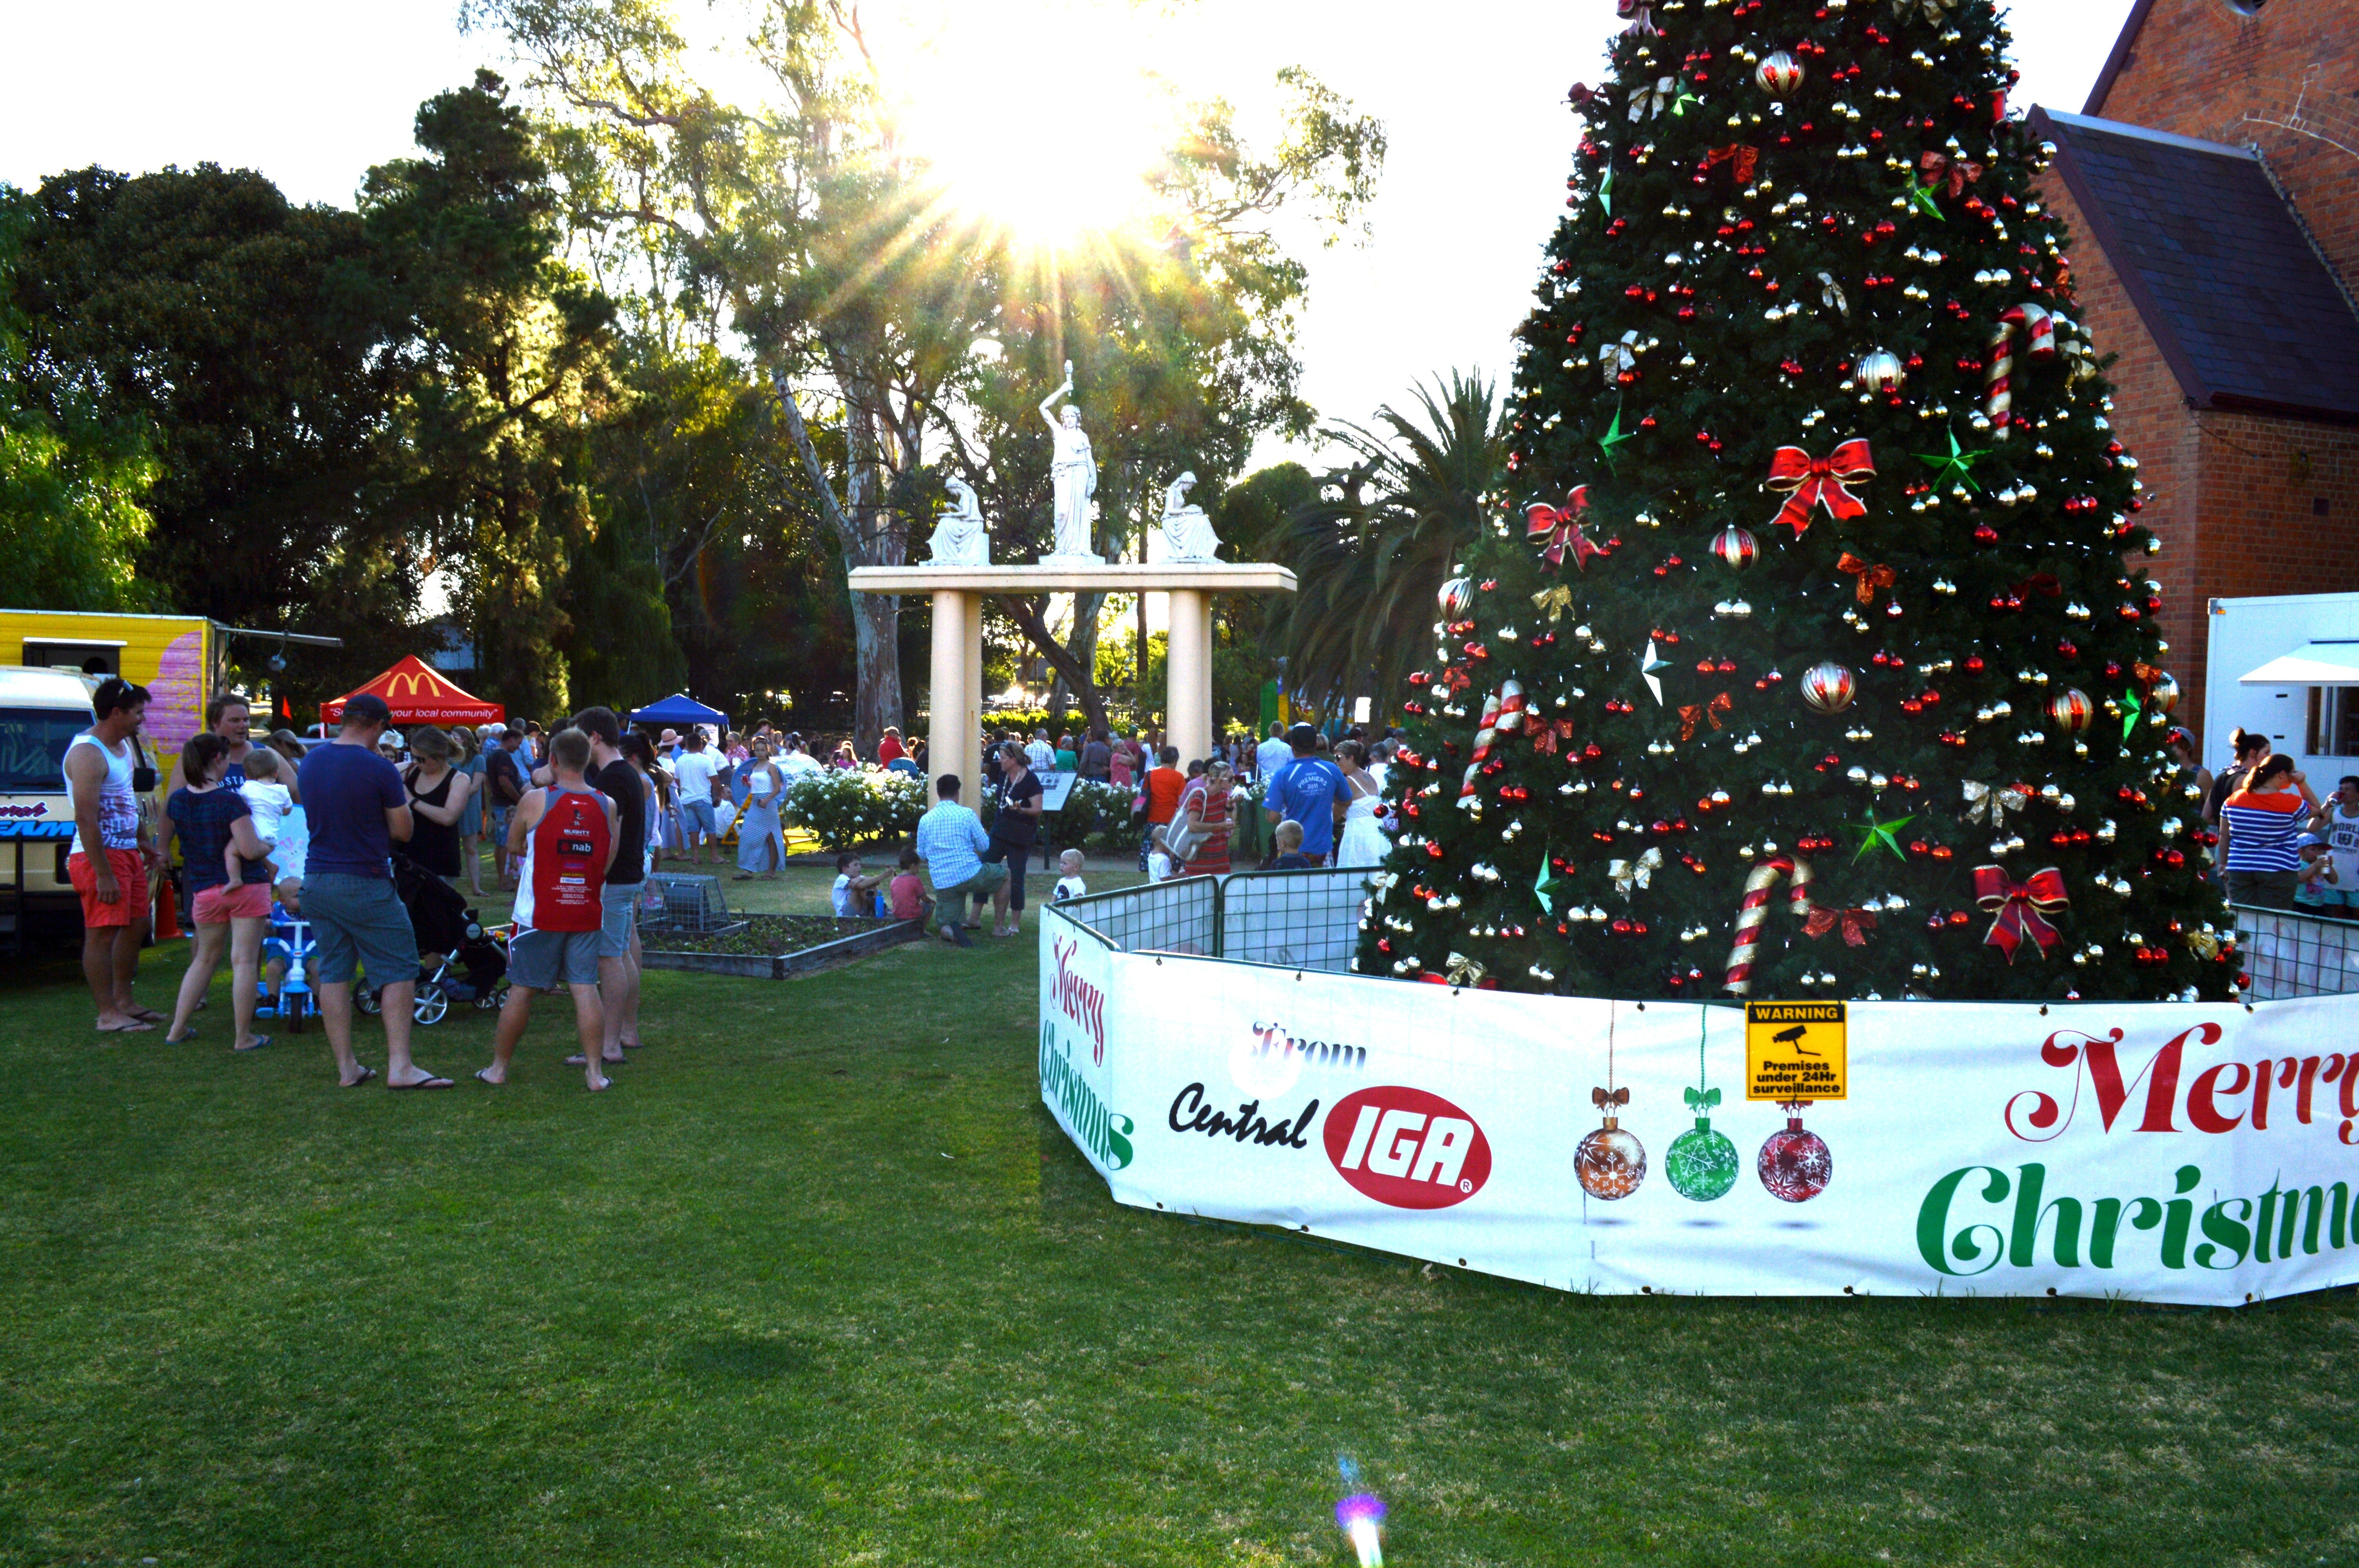 Community Christmas Party and Carols by Candlelight - VIC Tourism